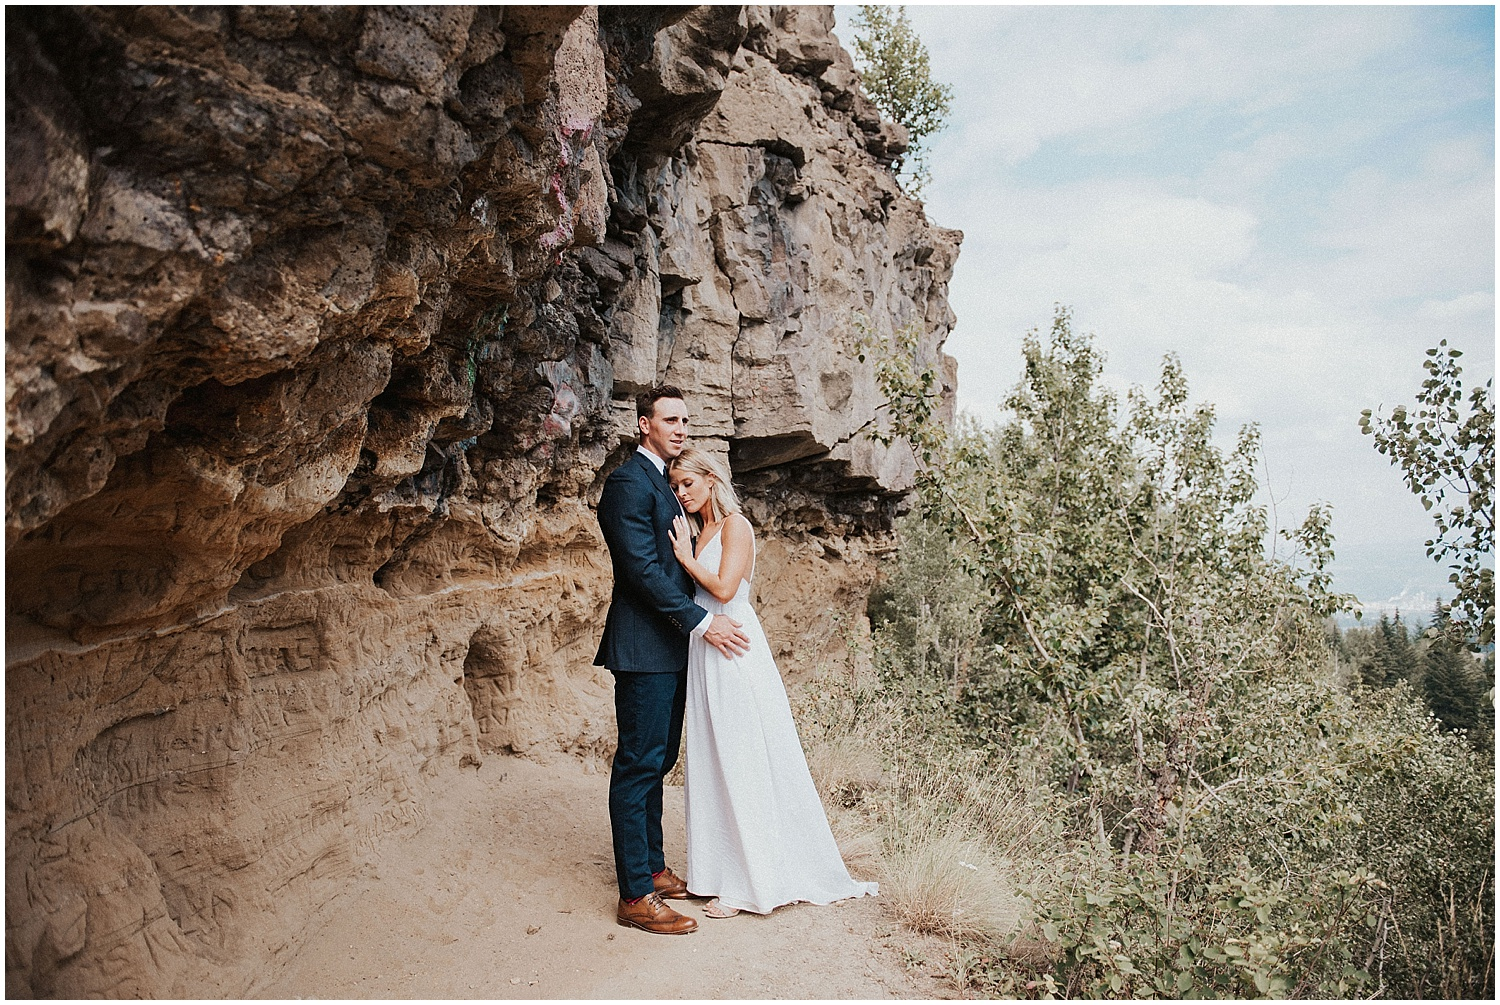 bc wedding photographer quesnel couple popping champagne fun photography pinnacles park lookout point